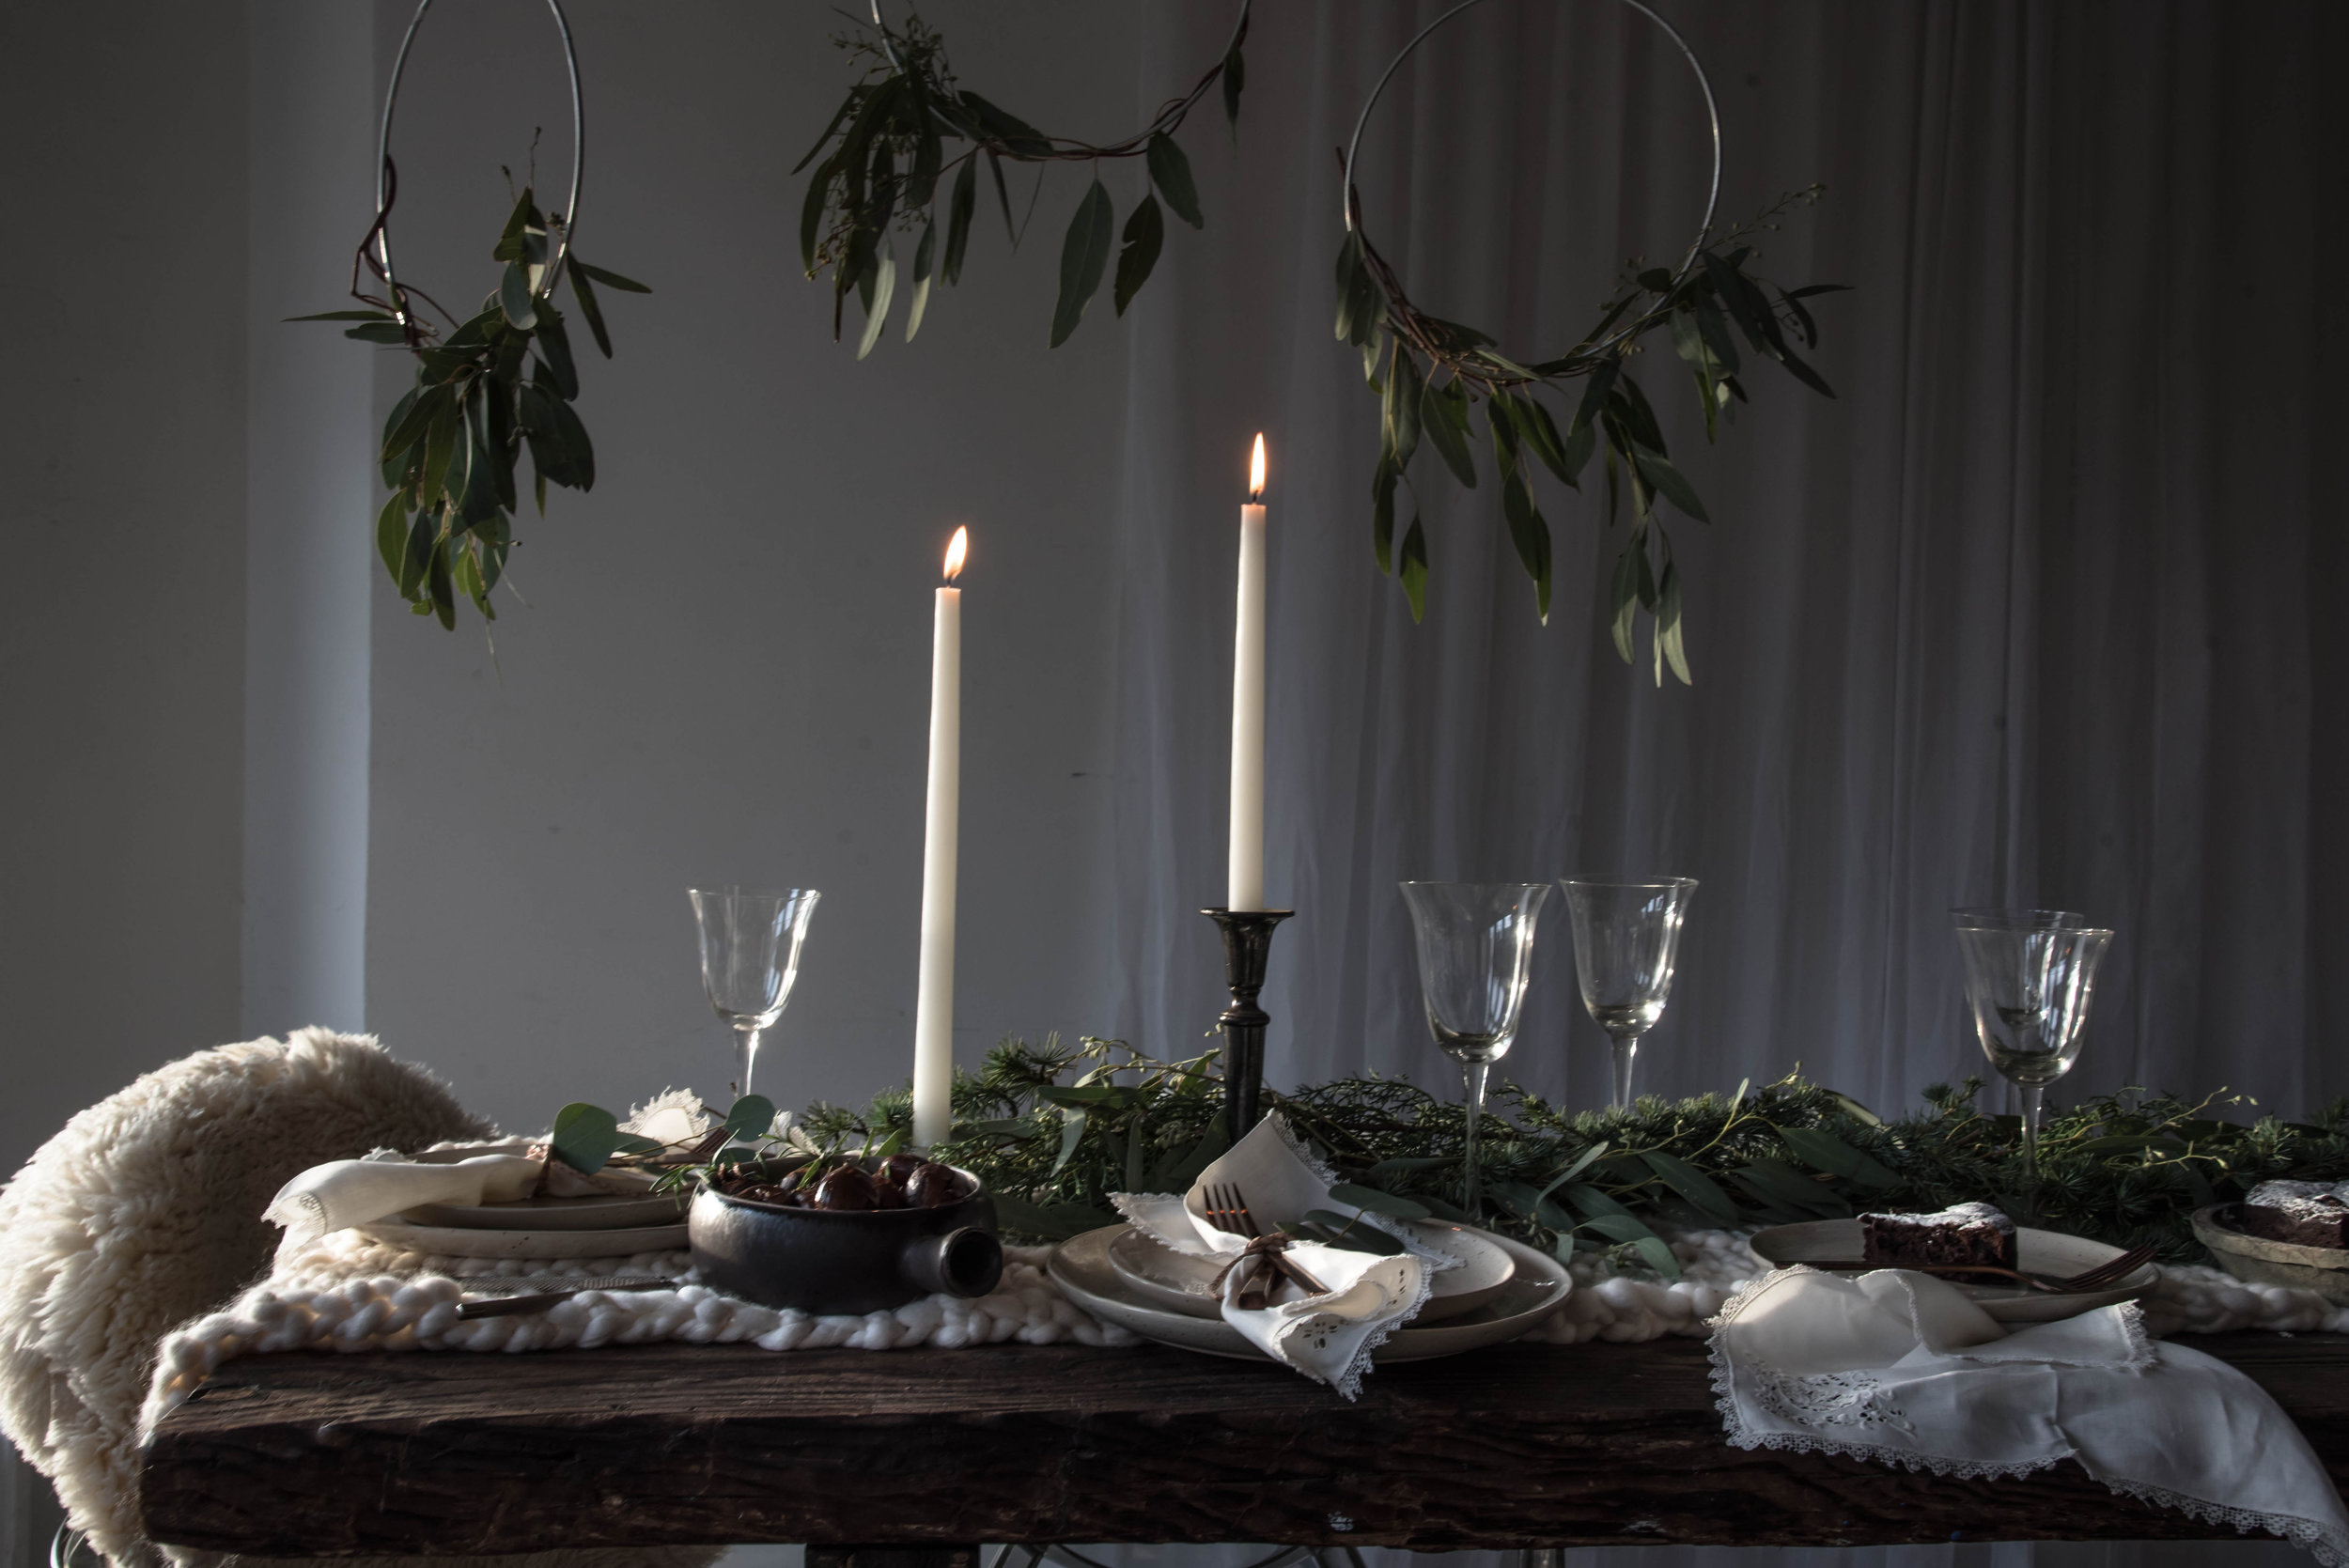 Winter Light - A Holiday Table Setting